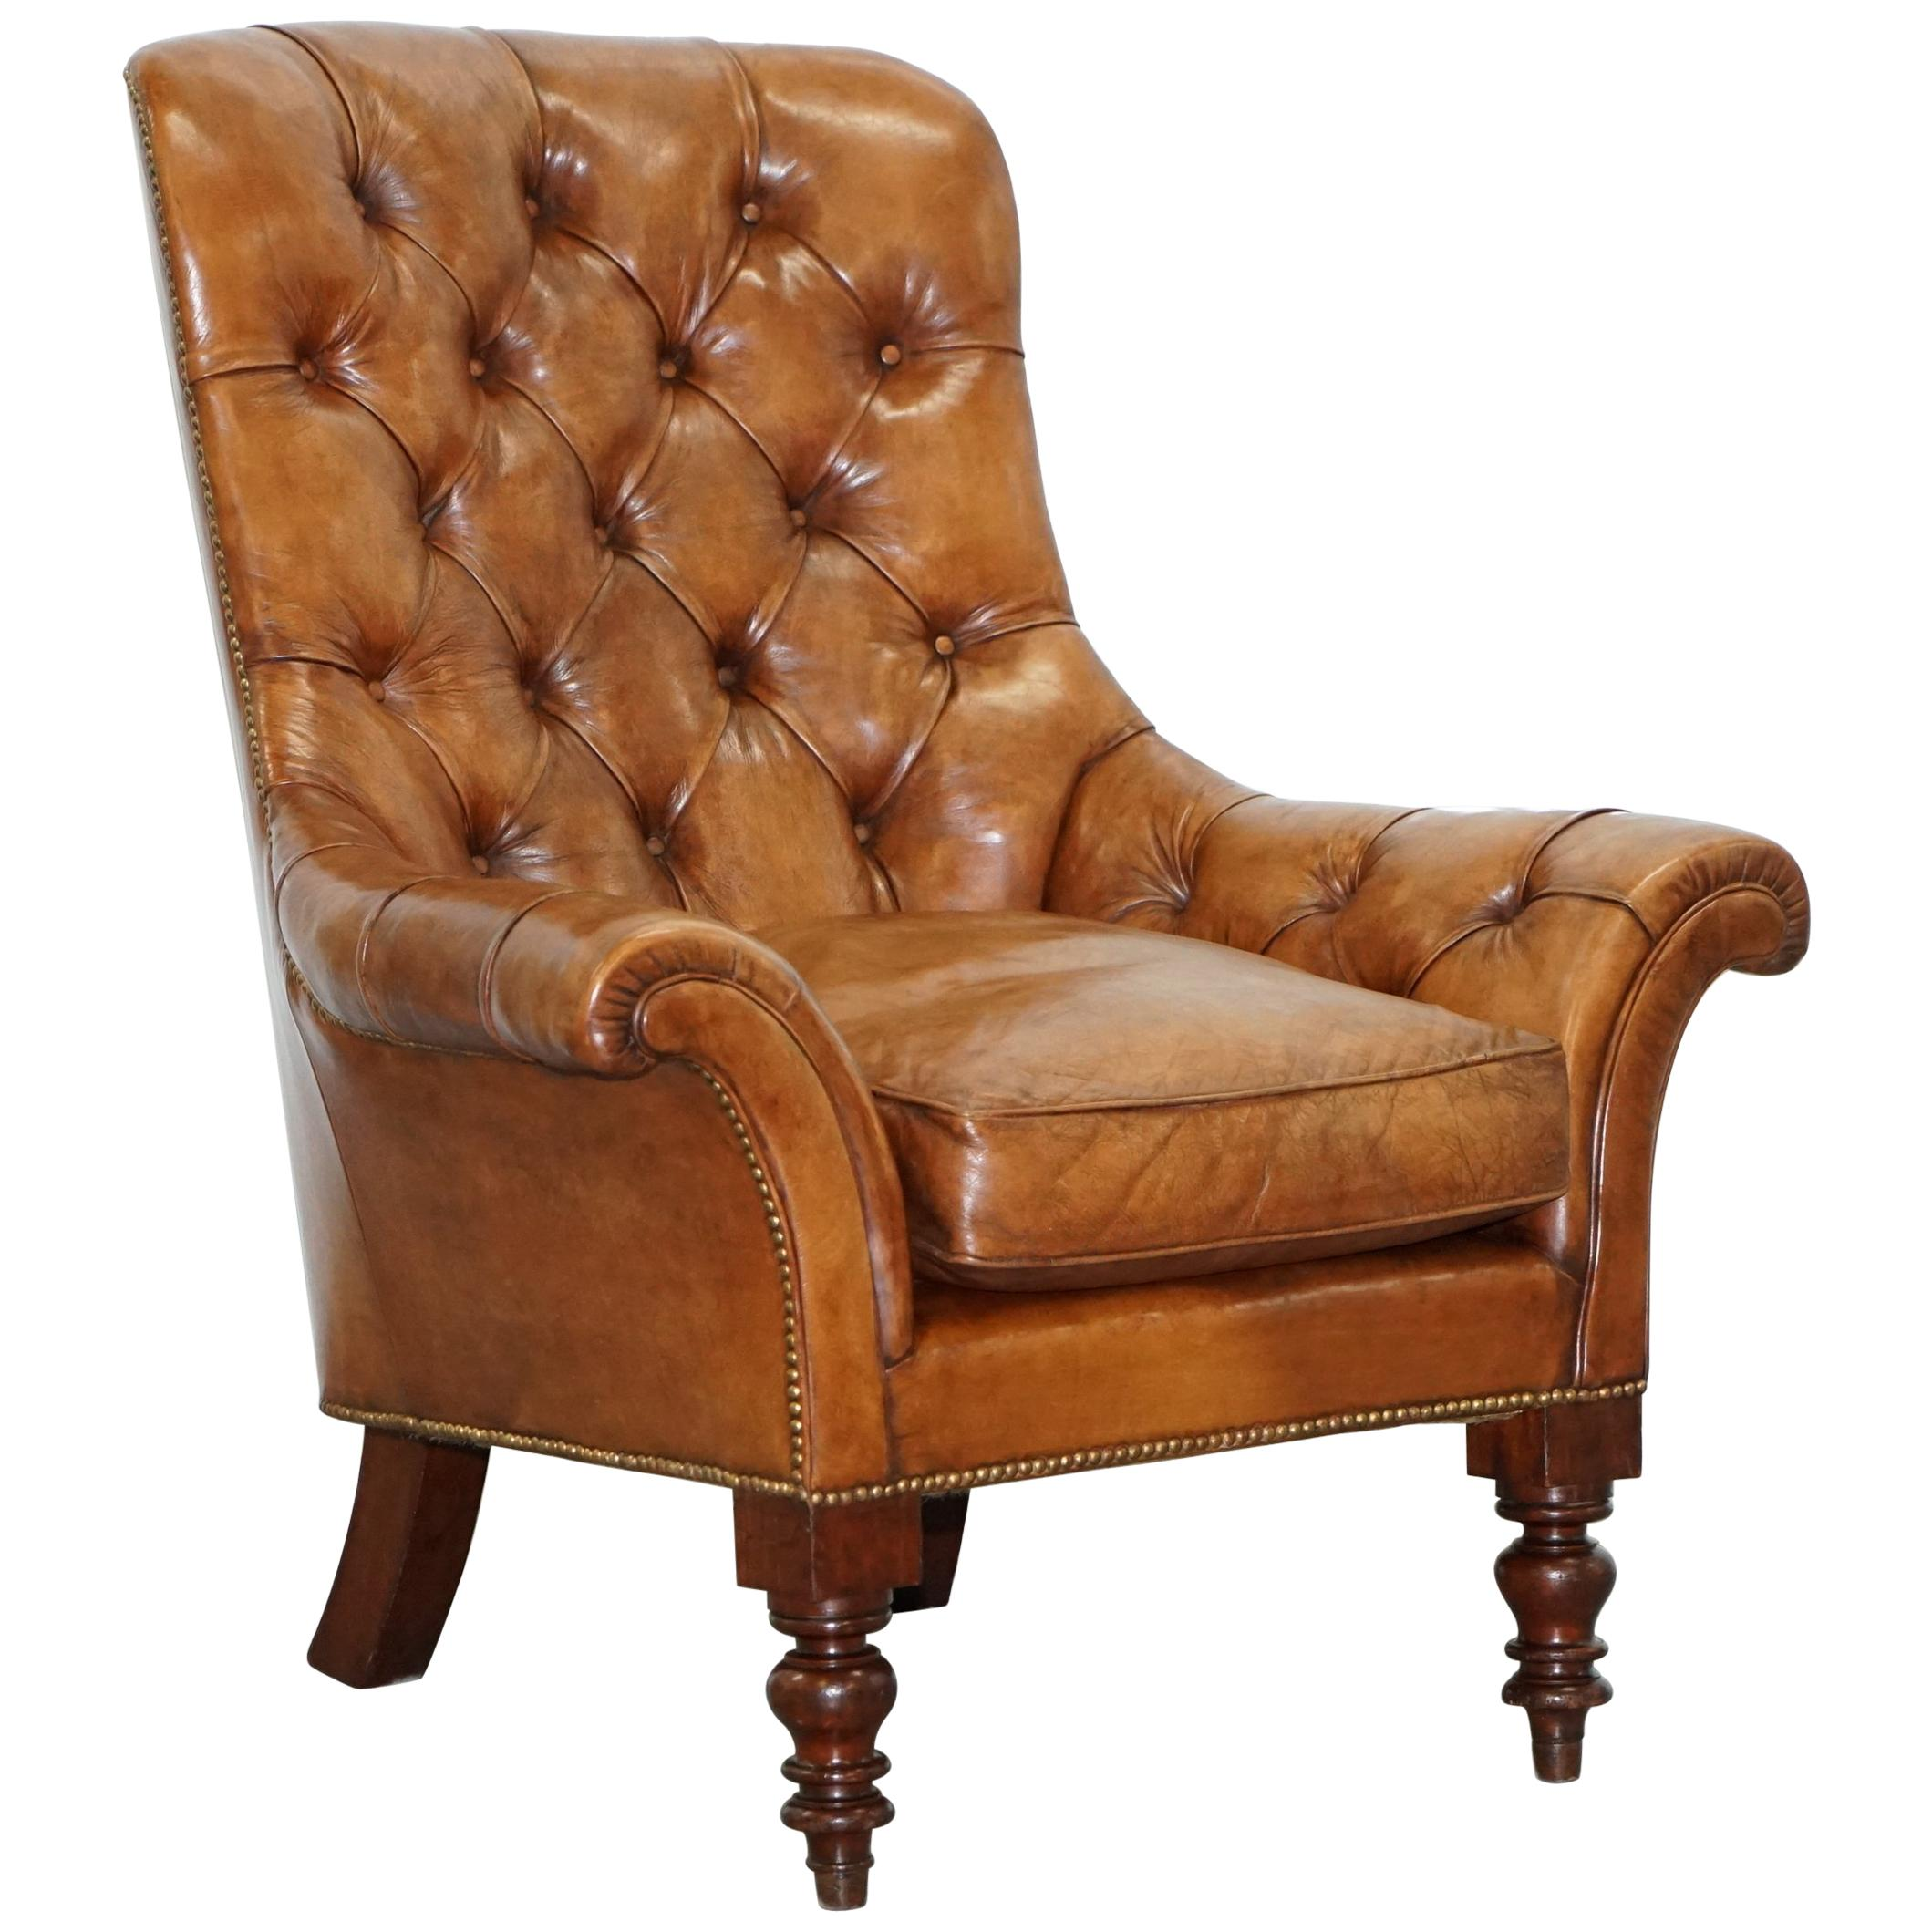 Fully restored edwardian aged brown leather library reading armchair circa 1900 for sale at 1stdibs